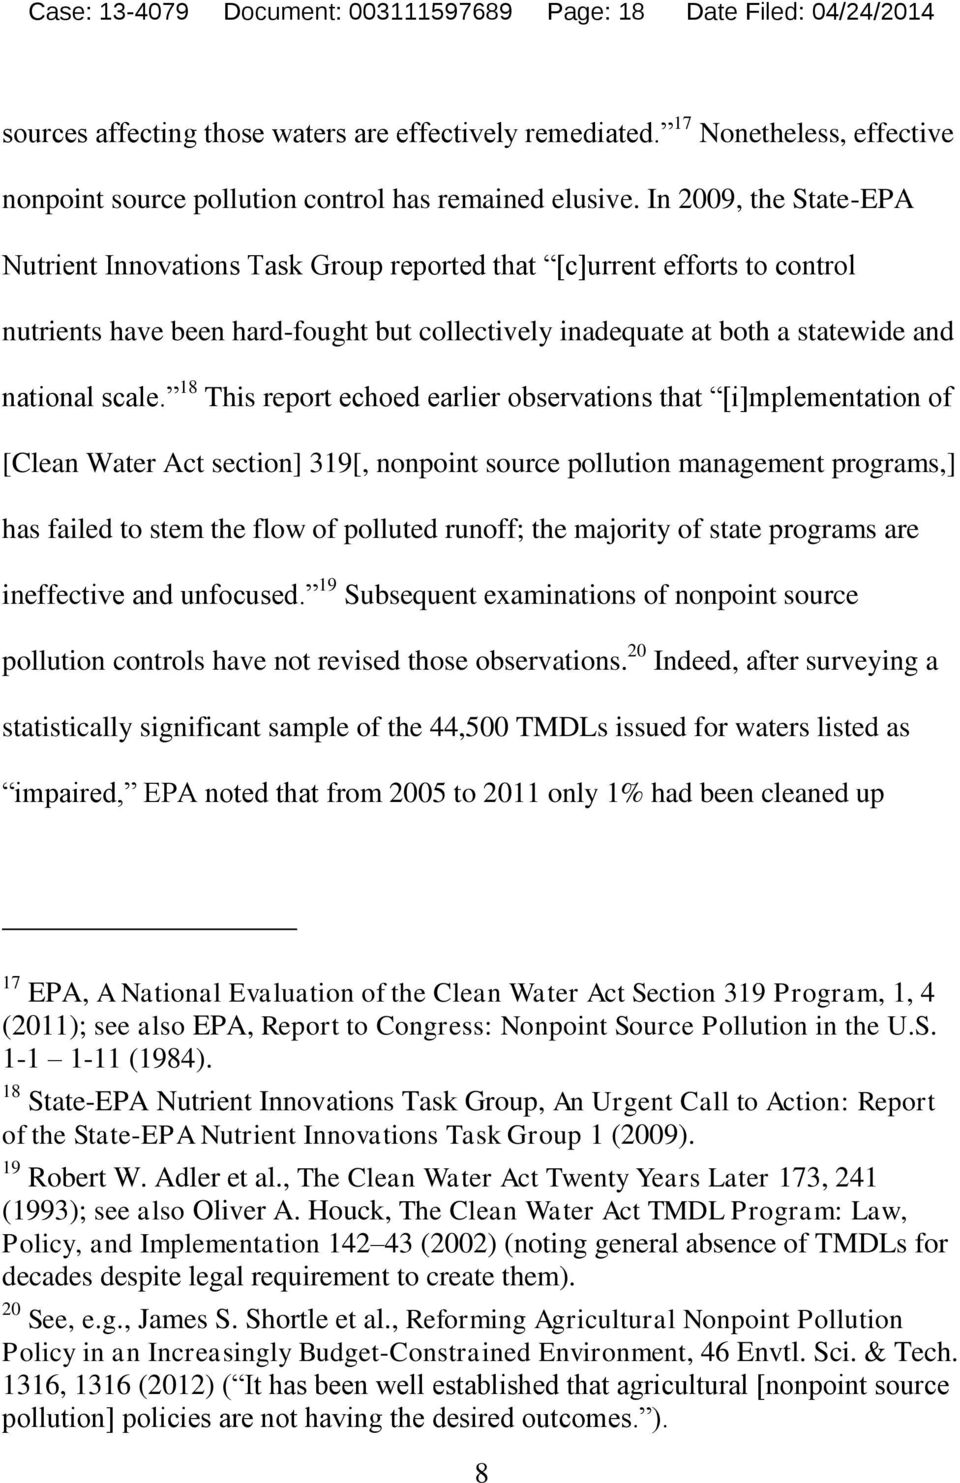 In 2009, the State-EPA Nutrient Innovations Task Group reported that [c]urrent efforts to control nutrients have been hard-fought but collectively inadequate at both a statewide and national scale.